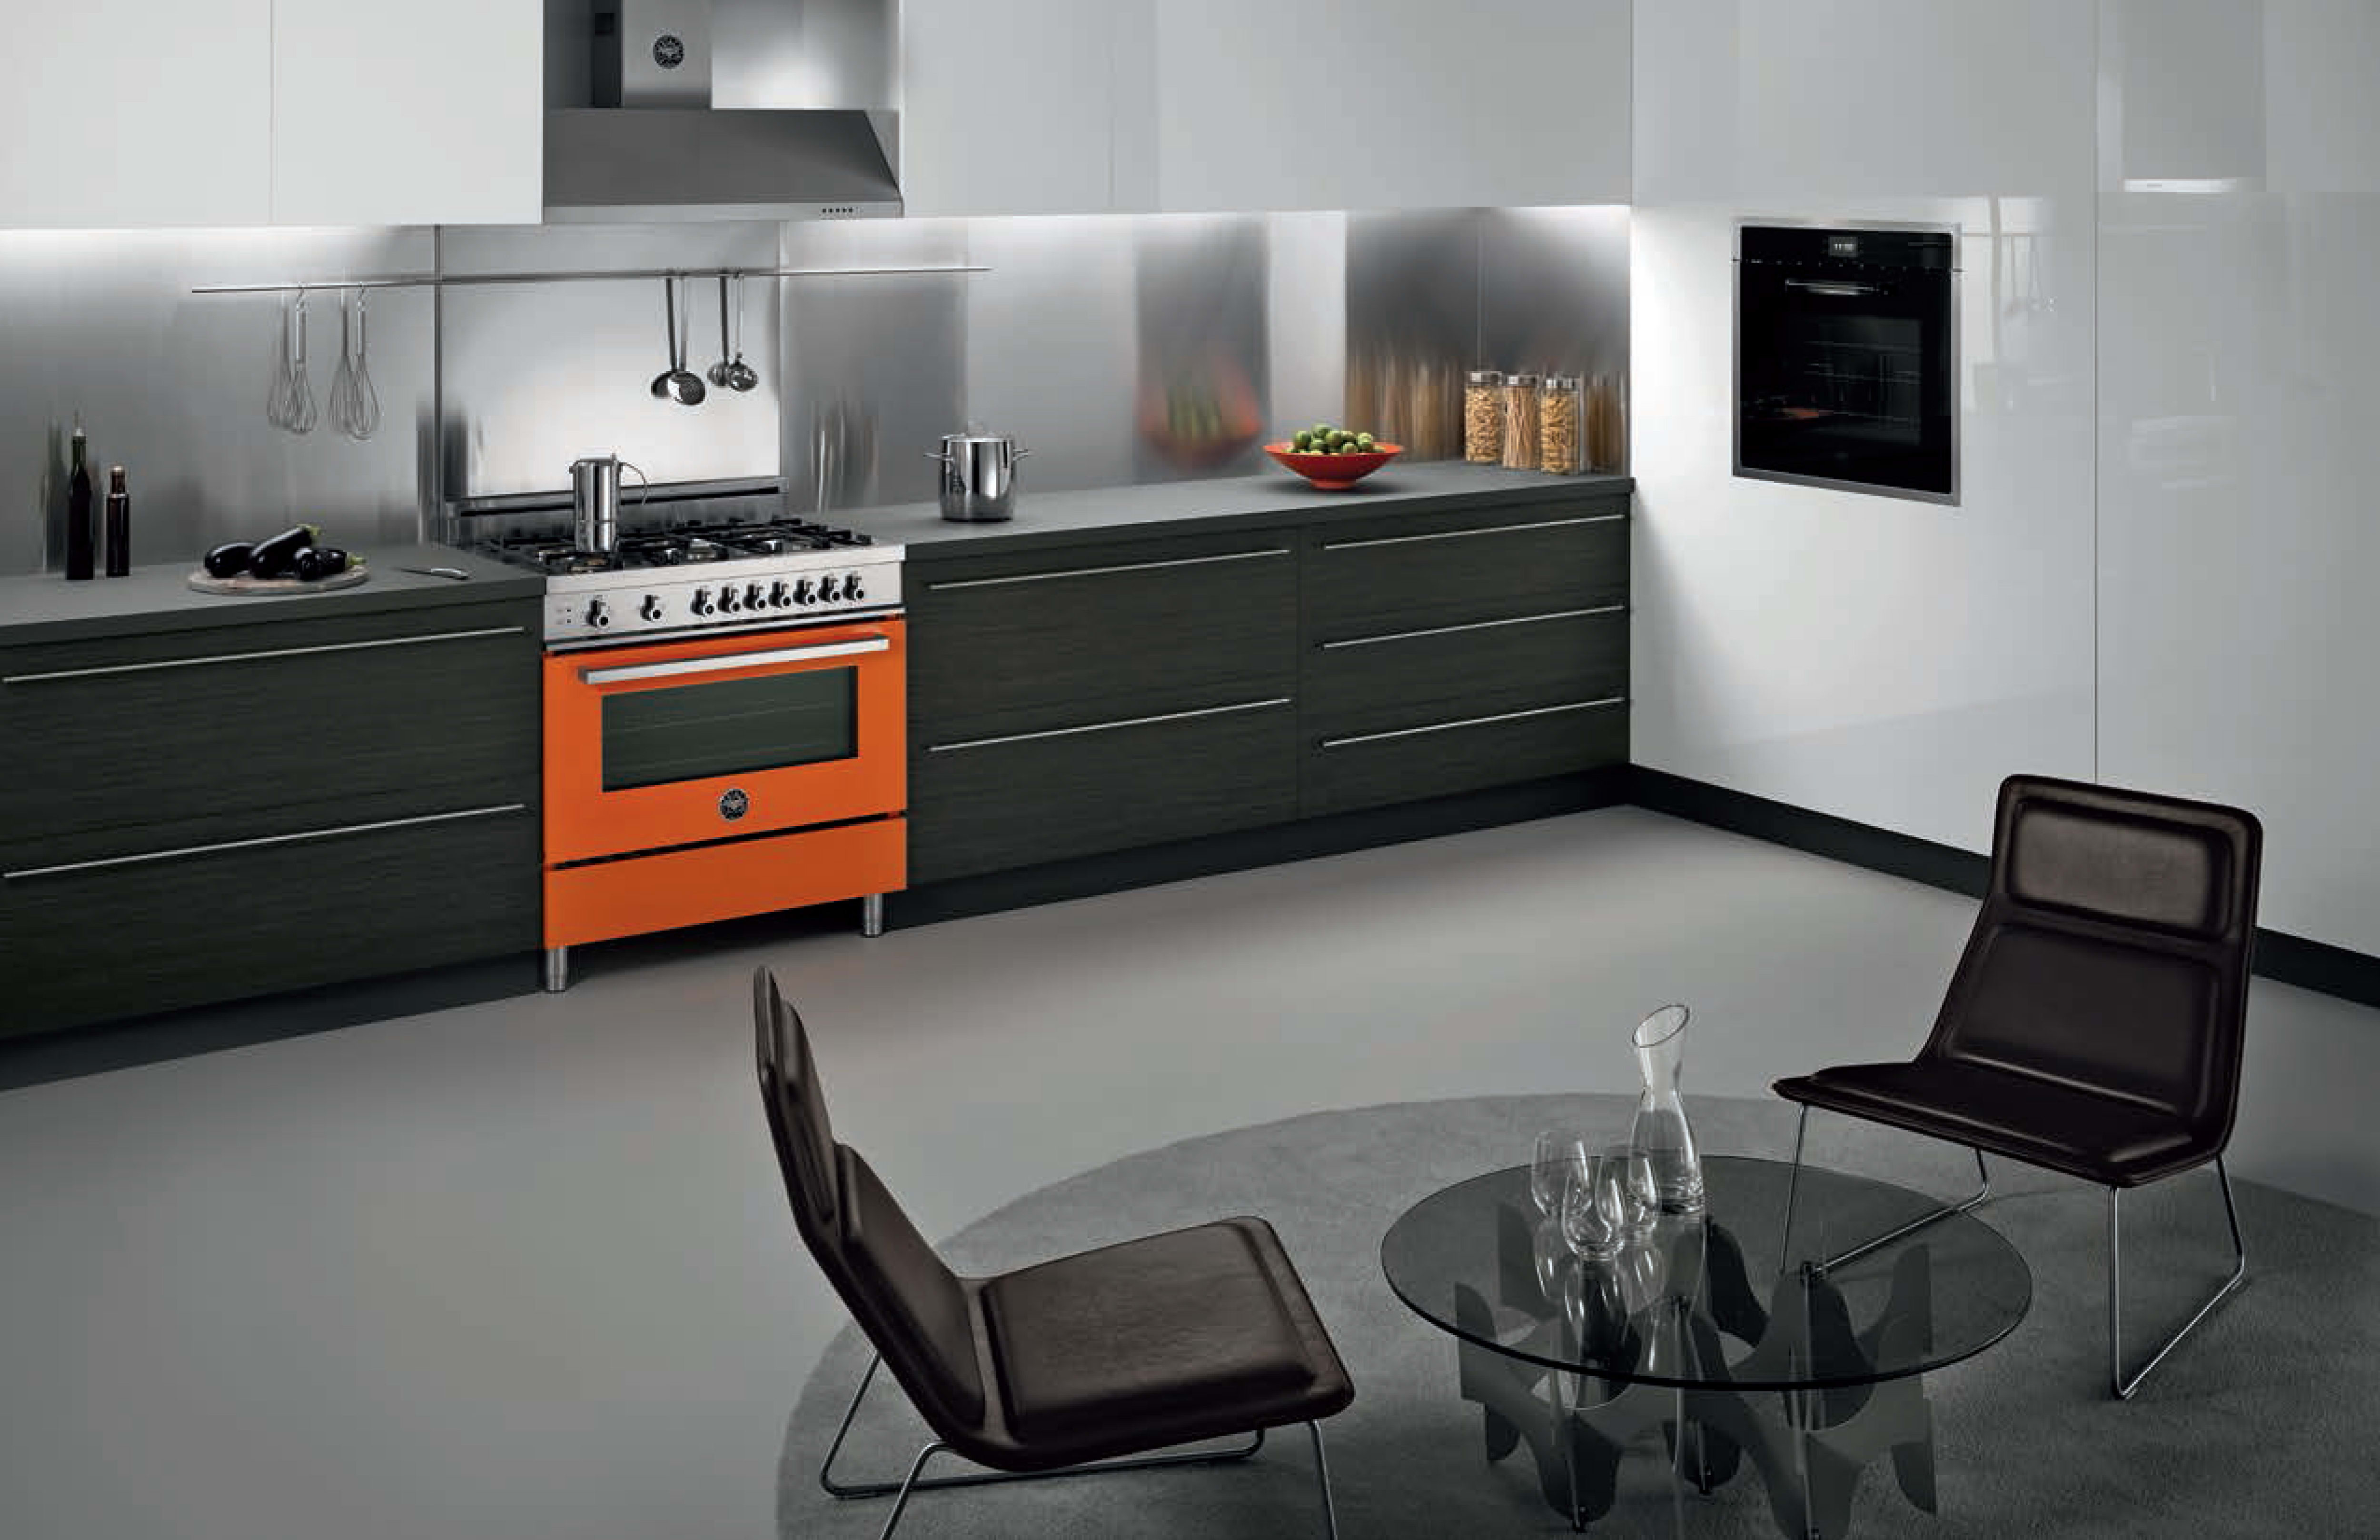 A modern kitchen outfitted with a striking Professional Series range.